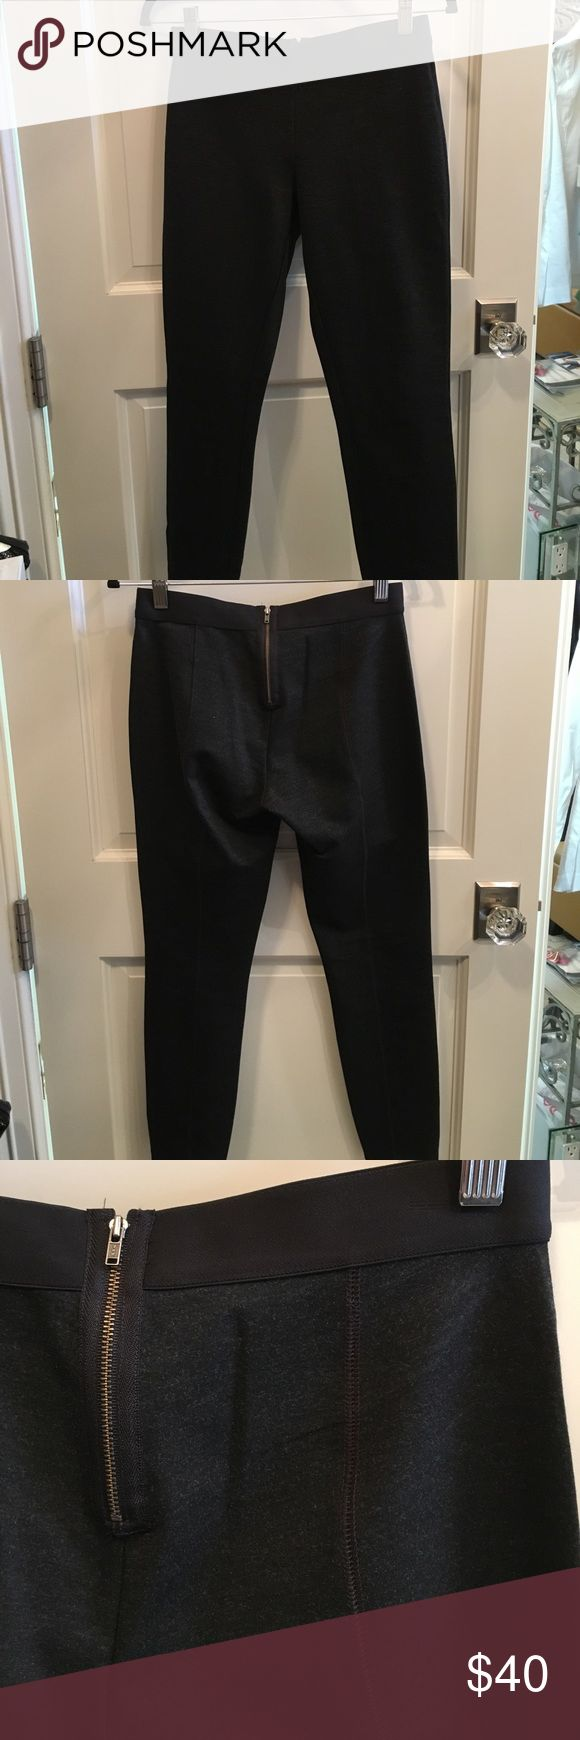 J Crew zip back legging pants Charcoal grey J Crew zipper back legging pants. Seams up the back. Elastic sewn in waistband. Size 4 pretty snug fit. Inseam 27 inches. Only worn a couple times. No snags or pills, like new. No trades. Leg opening 5 inches J. Crew Pants Leggings